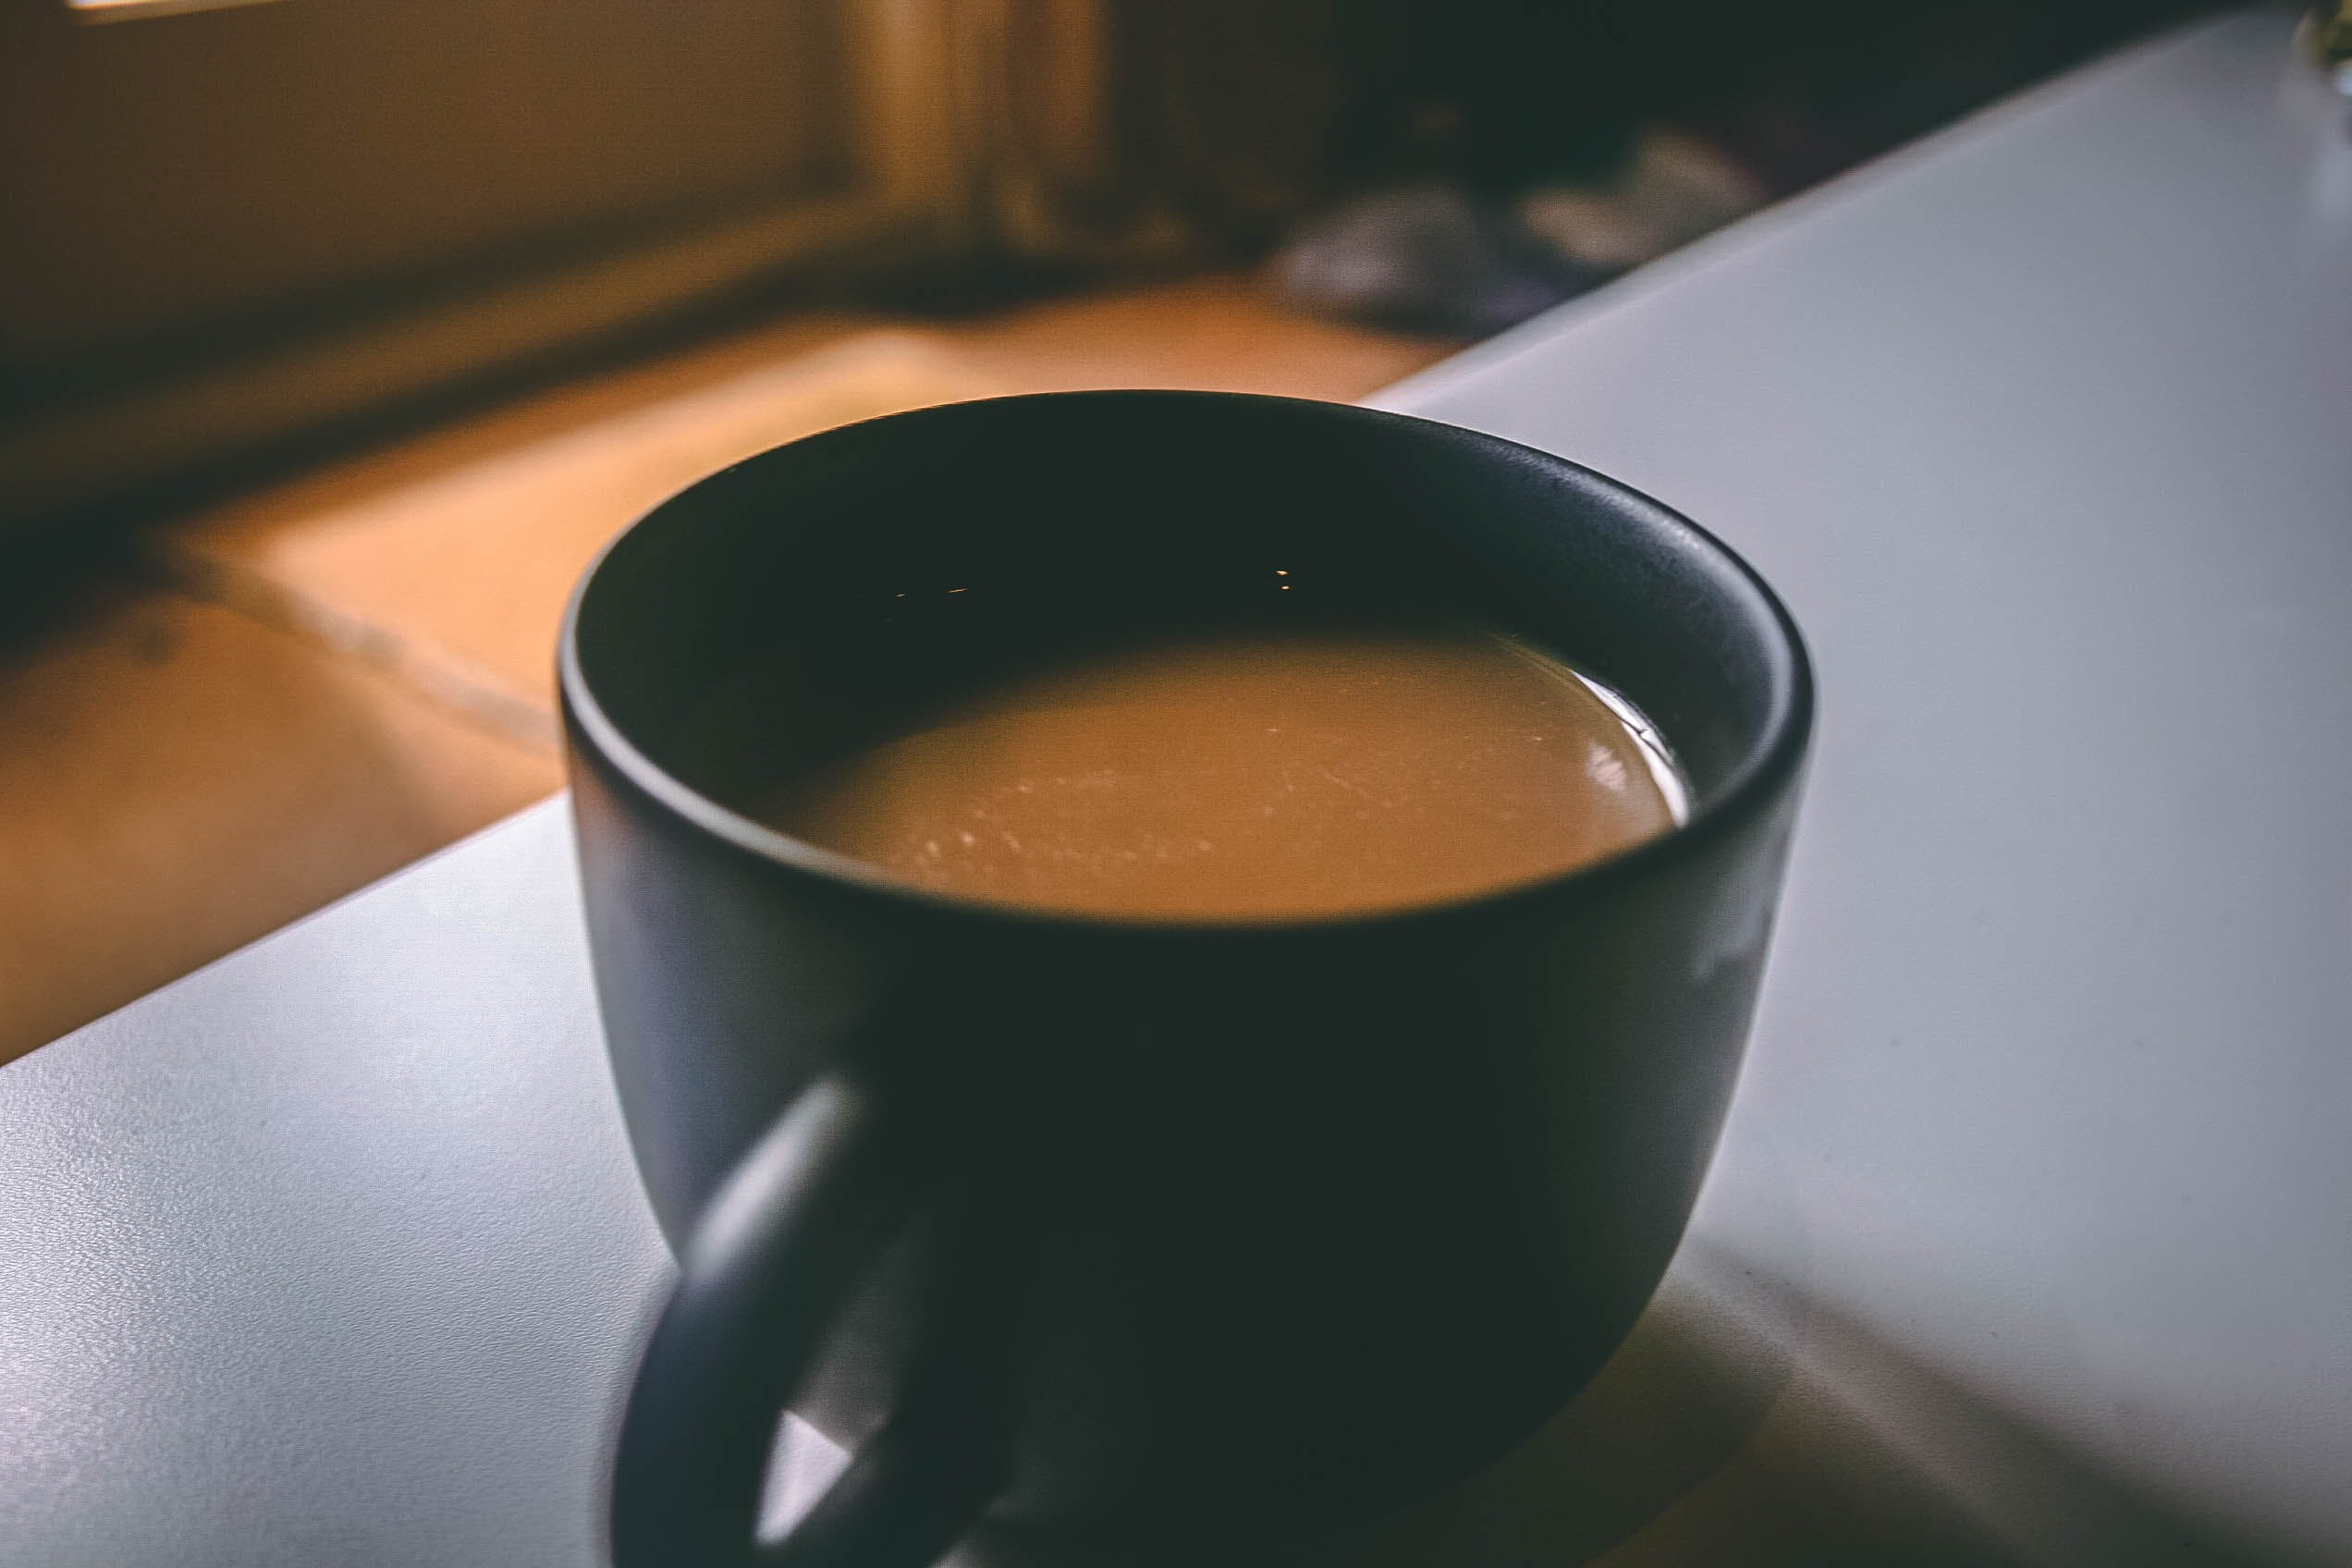 Shallow Focus Photography of Black Ceramic Mug Filled With Brown Coffee on the Table